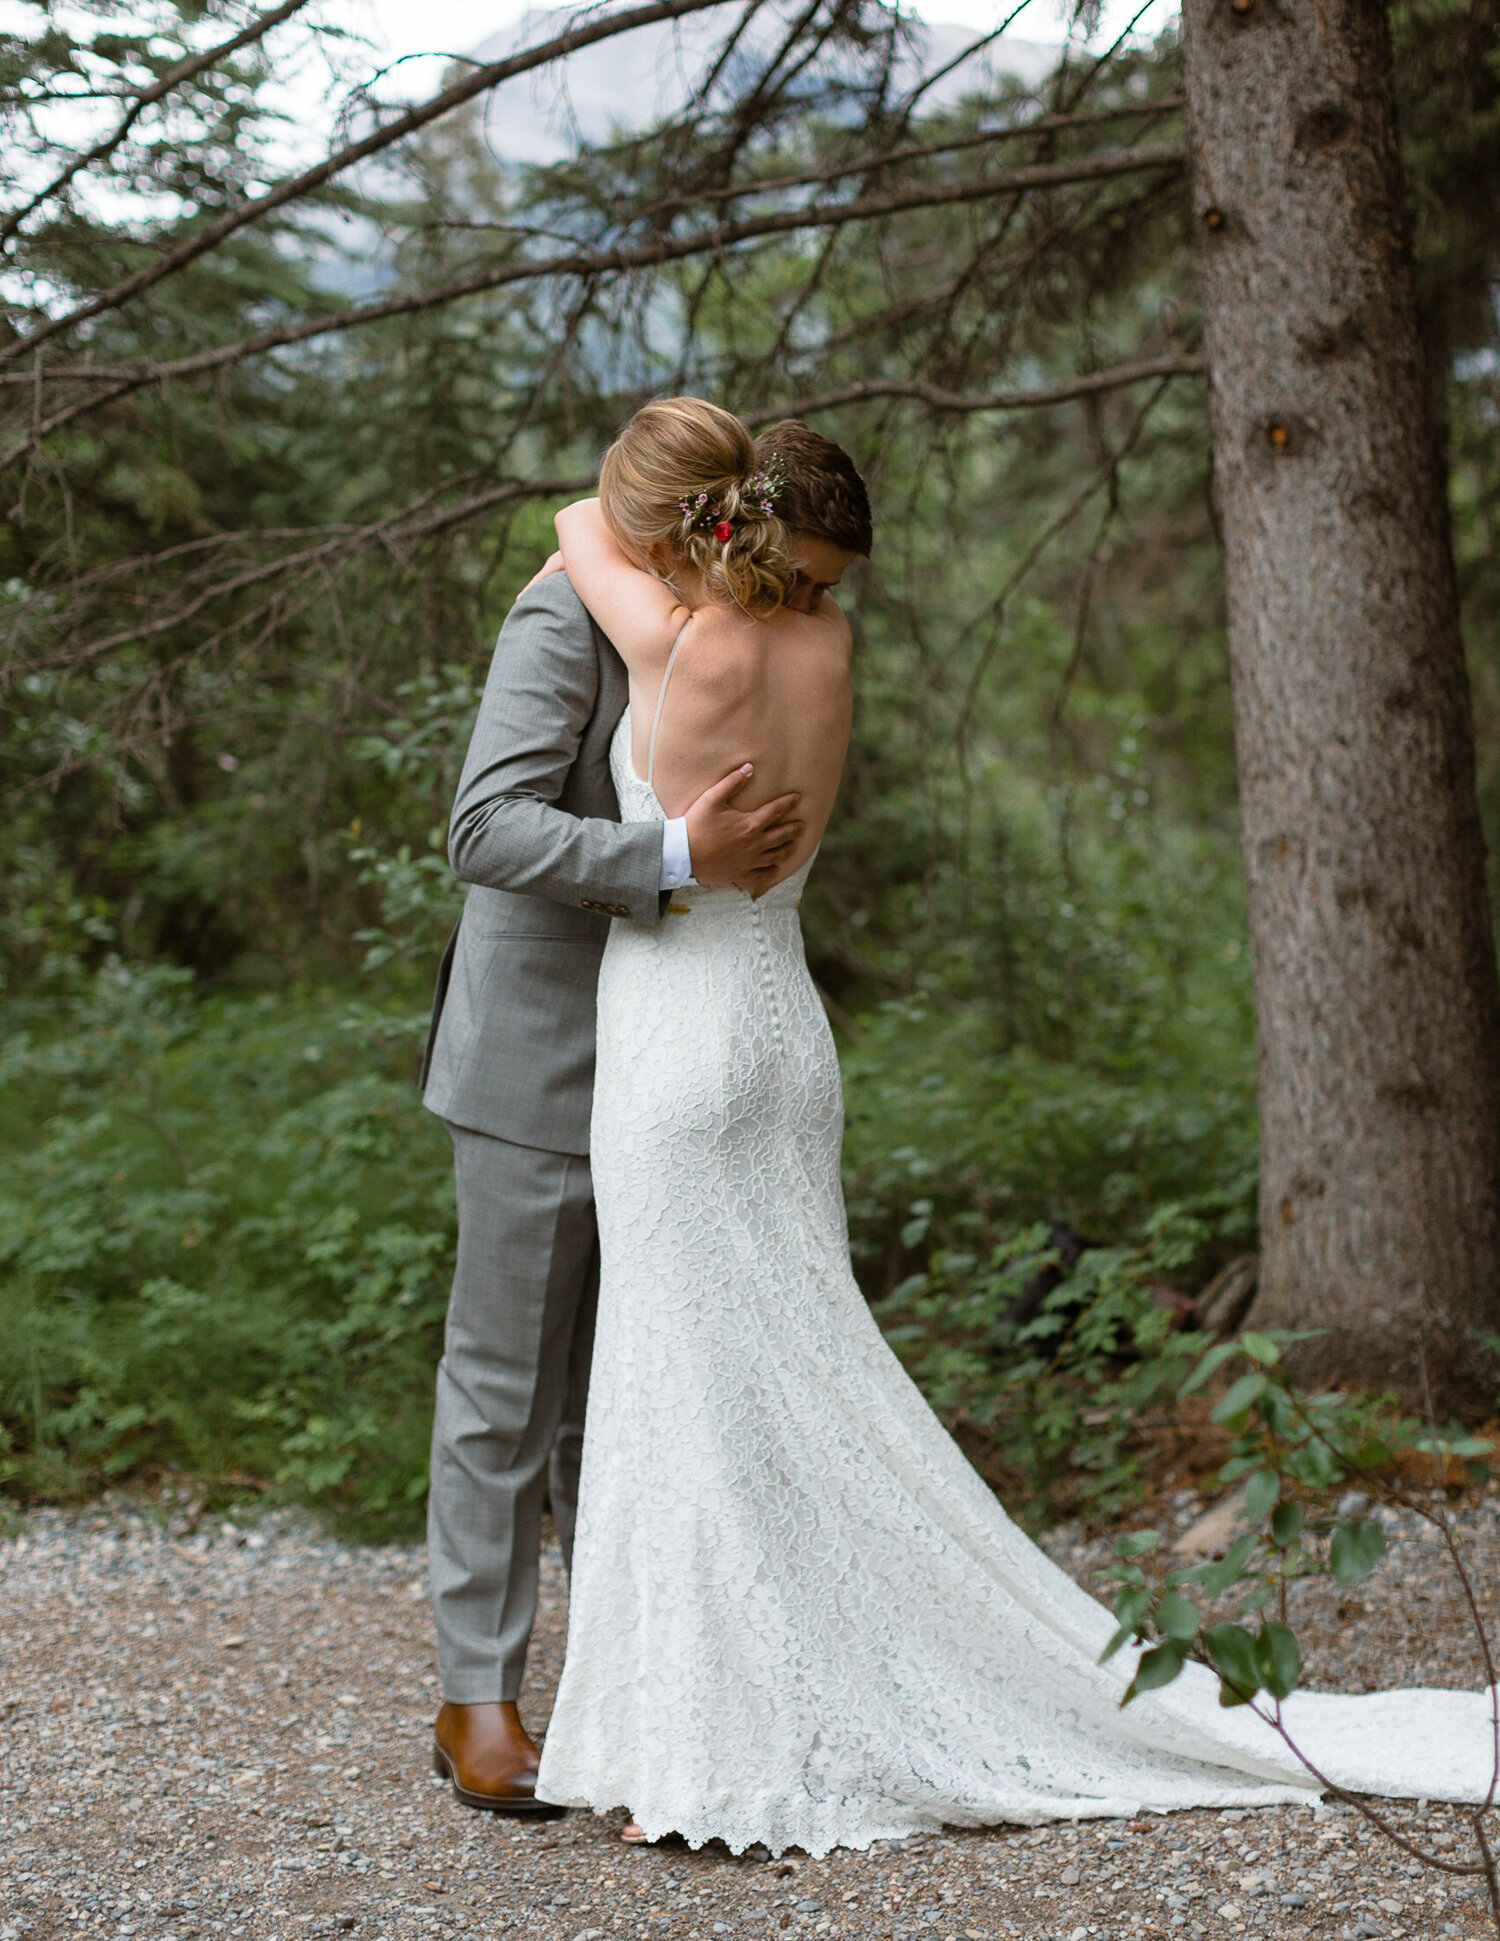 32-Canmore-Alberta-Real-Wedding-Best-Wedding-Photographers-36.JPG